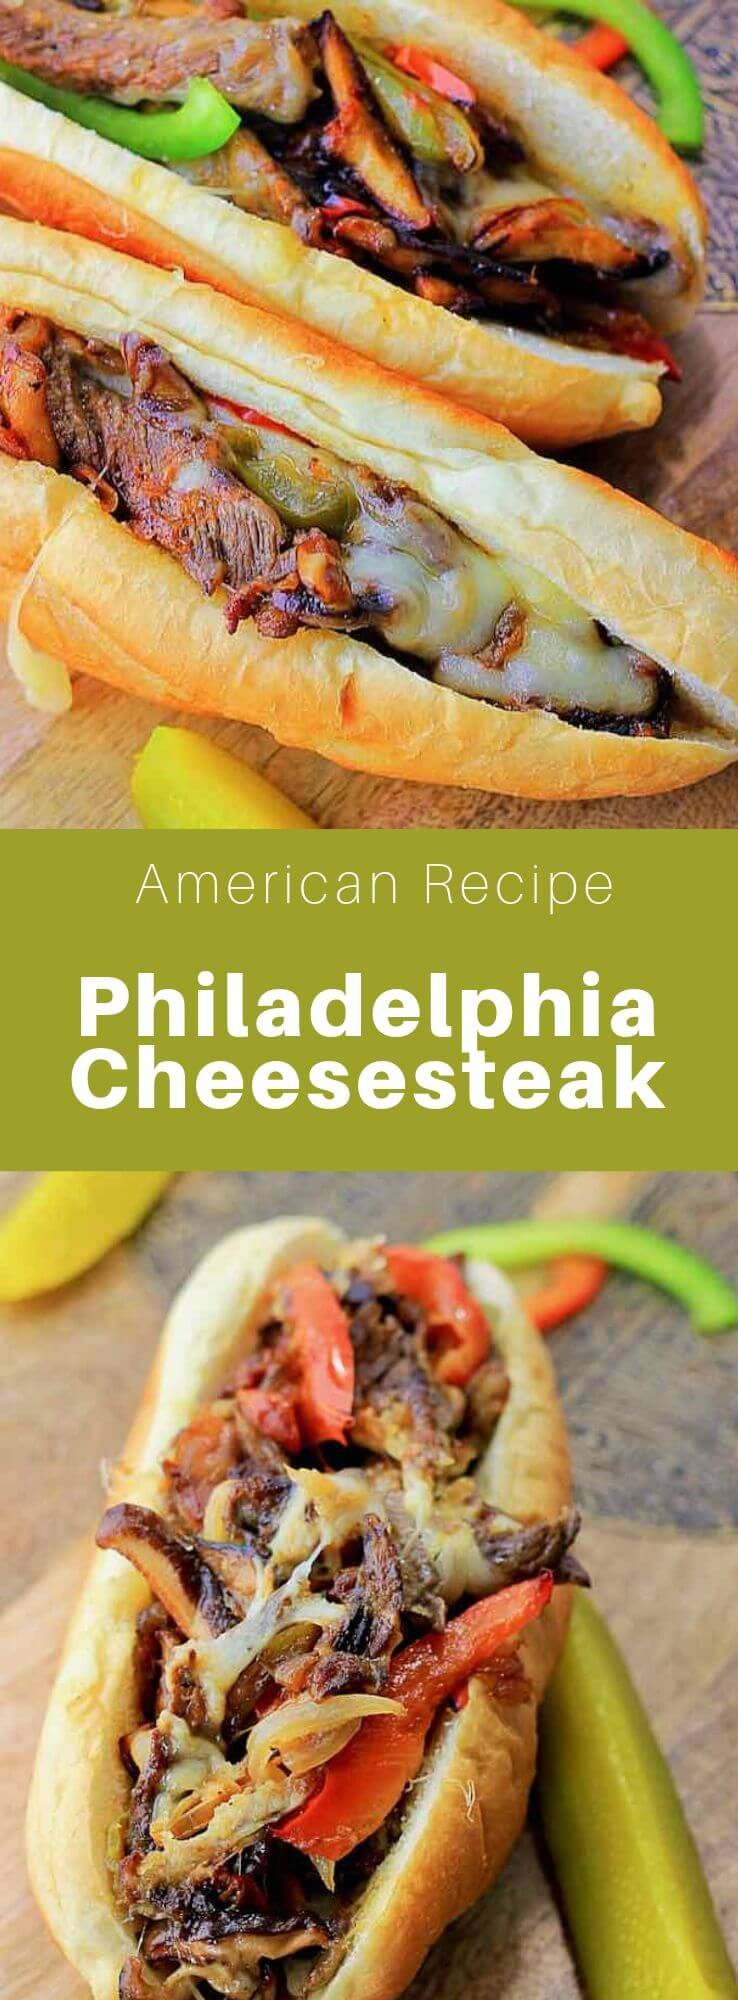 The Philadelphia cheesesteak, or Philly cheesesteak, is a typical beef and cheese sandwich from the city of Philadelphia, that sometimes include onion, bell peppers and mushrooms. #AmericanRecipe #AmericanFood #AmericanCuisine #WorldCuisine #196flavors